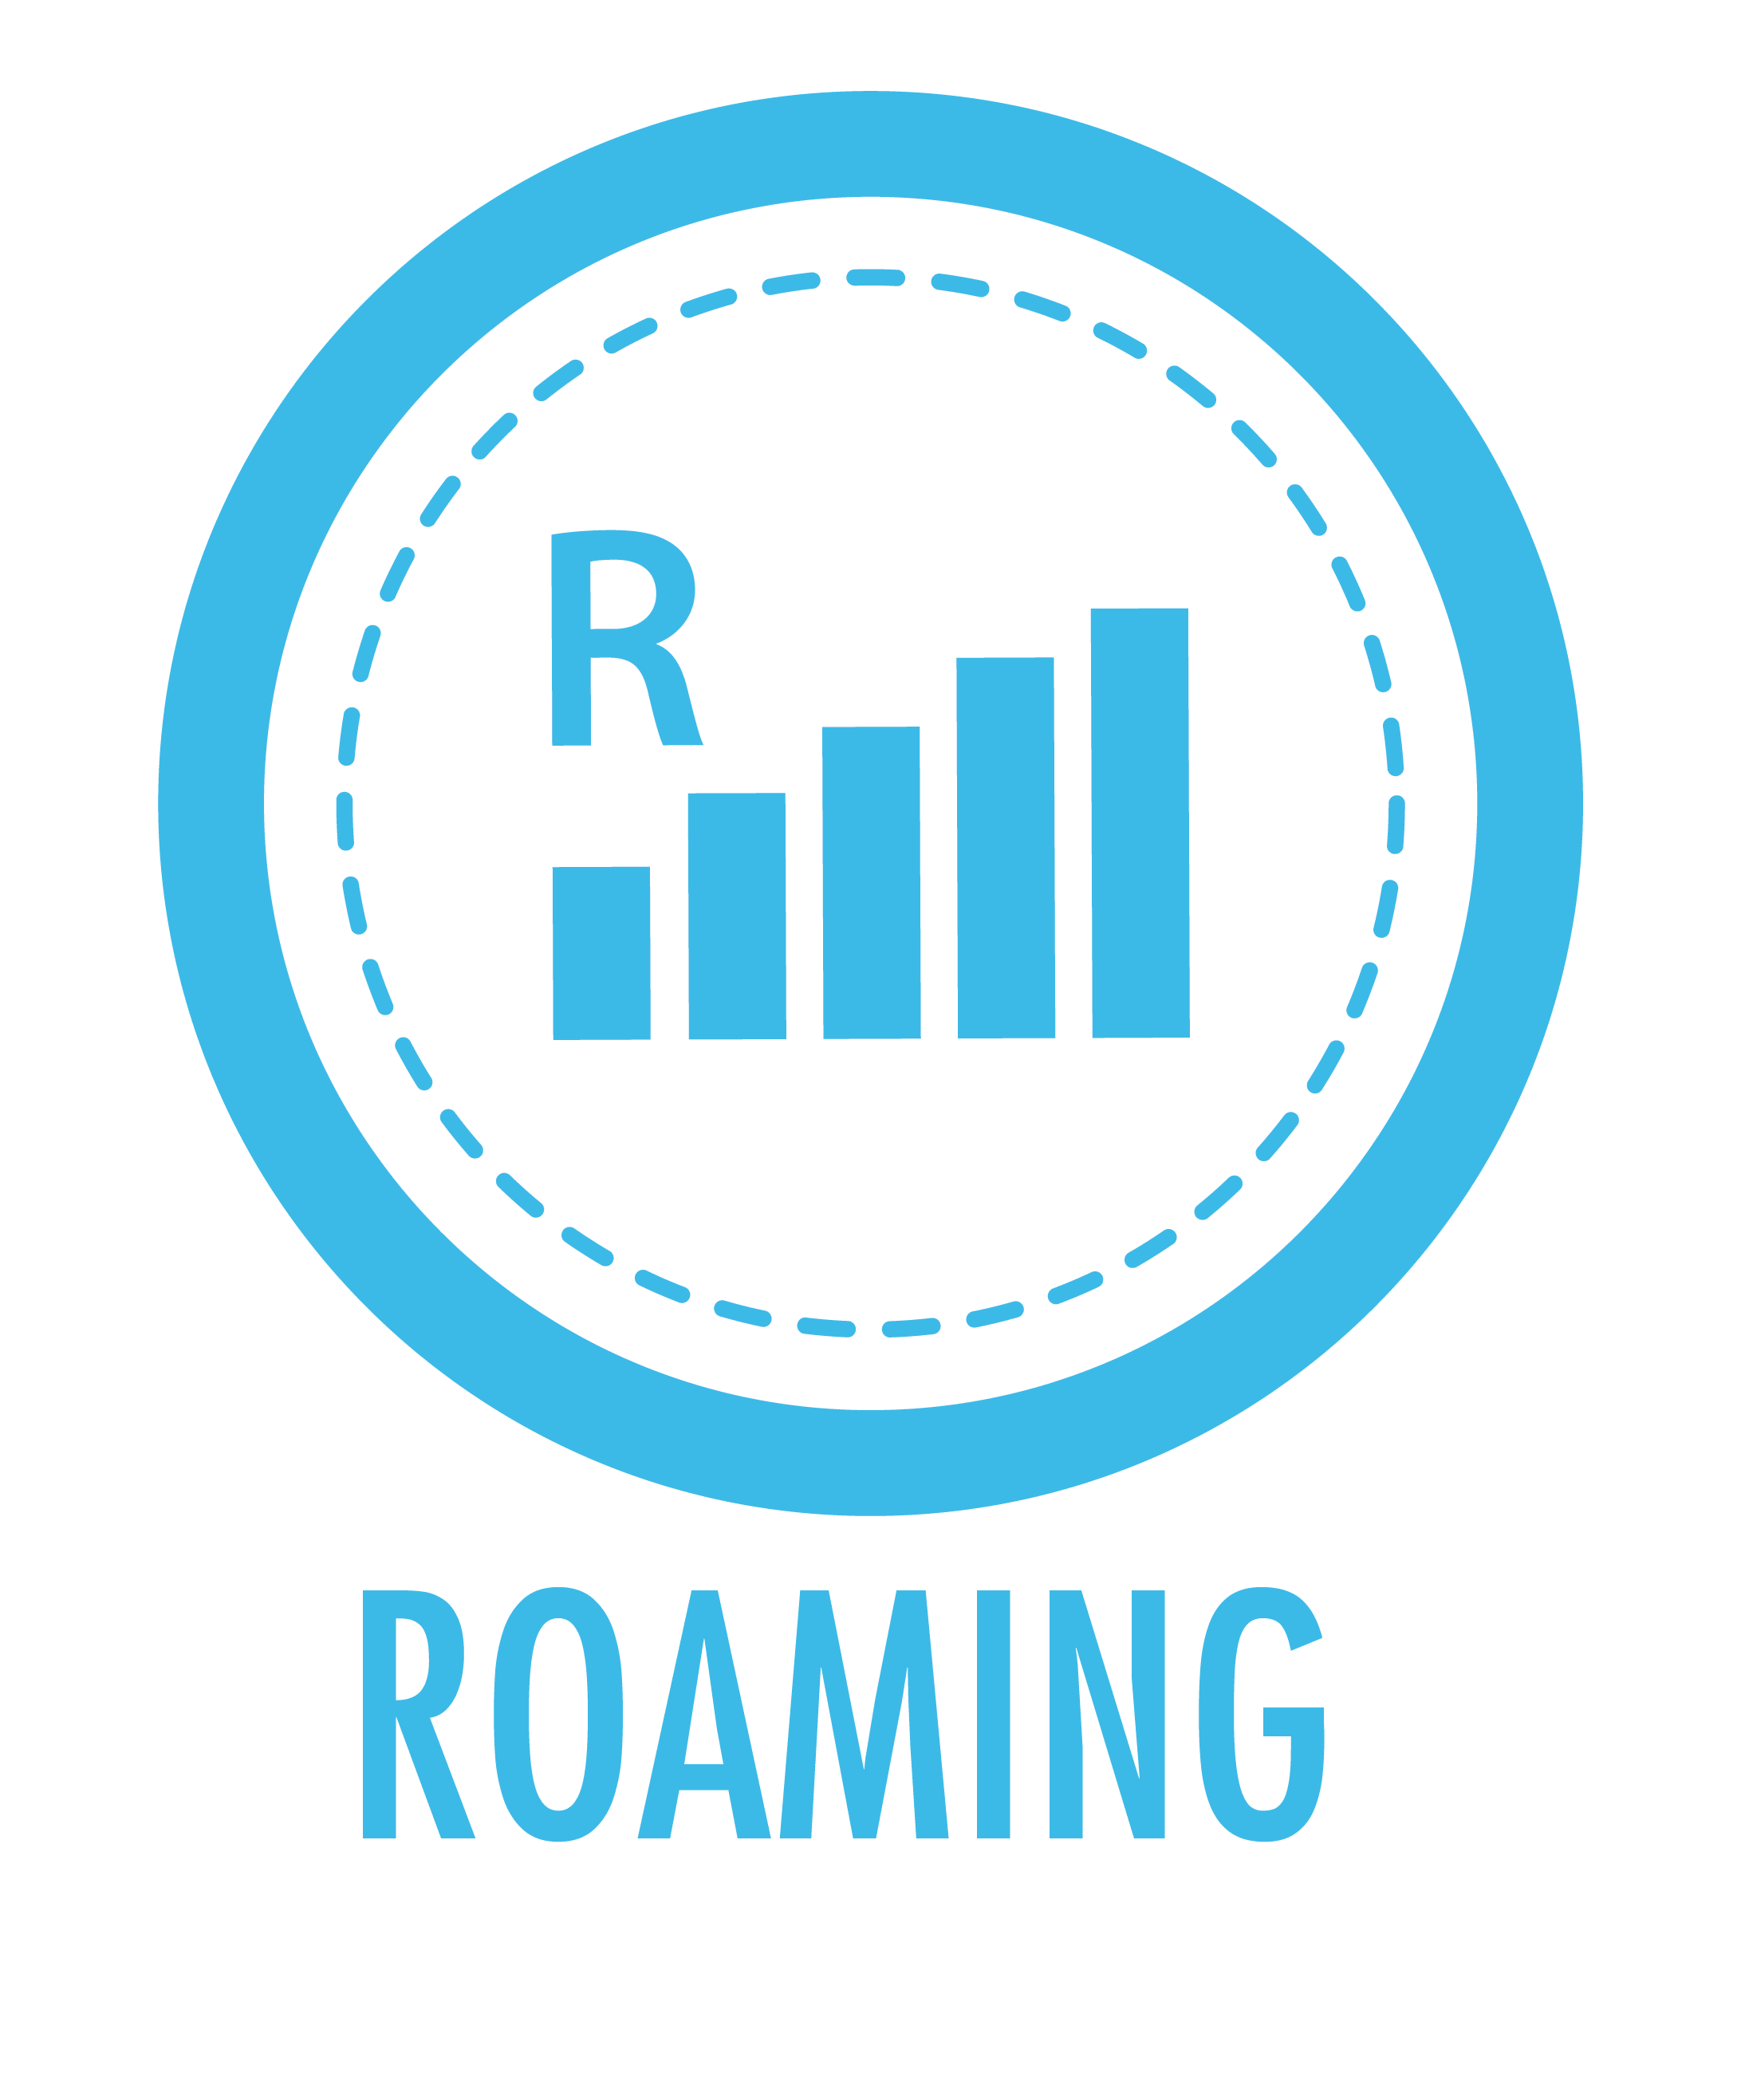 roaming solutions graphic